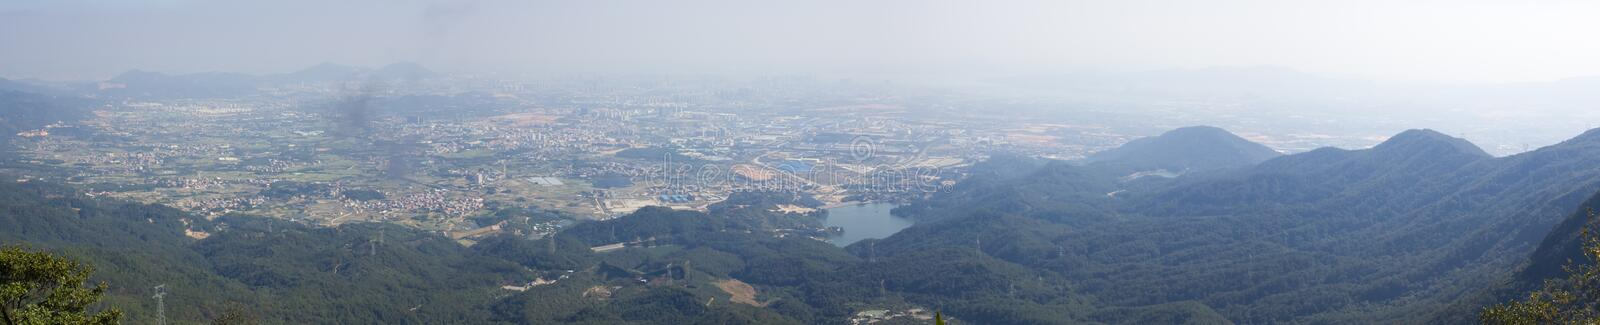 Overlooking of XiaMen HaiCang District. This is a picture of XiaMen HaiCang District was taken in XiaMen TianZhu Mountains,China stock images